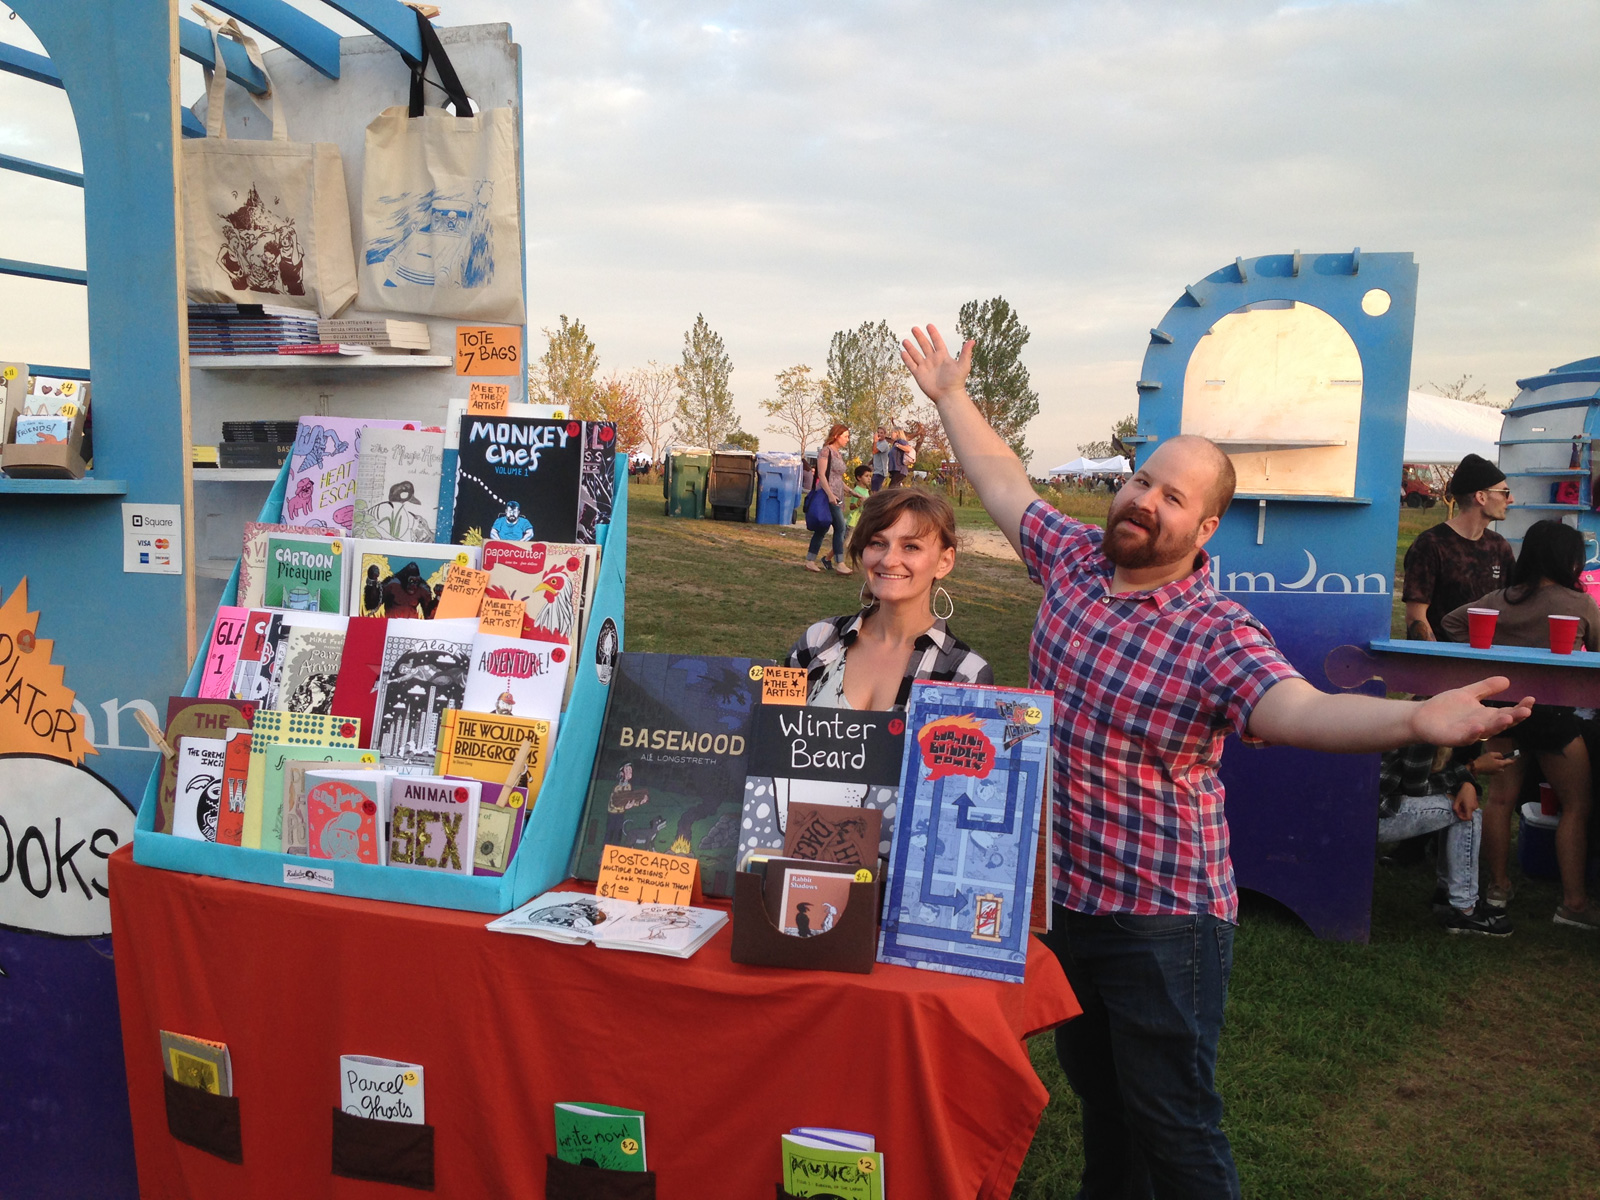 Cathy Hannah & Mike Freiheit at the Great Chicago Fire Festival 2015